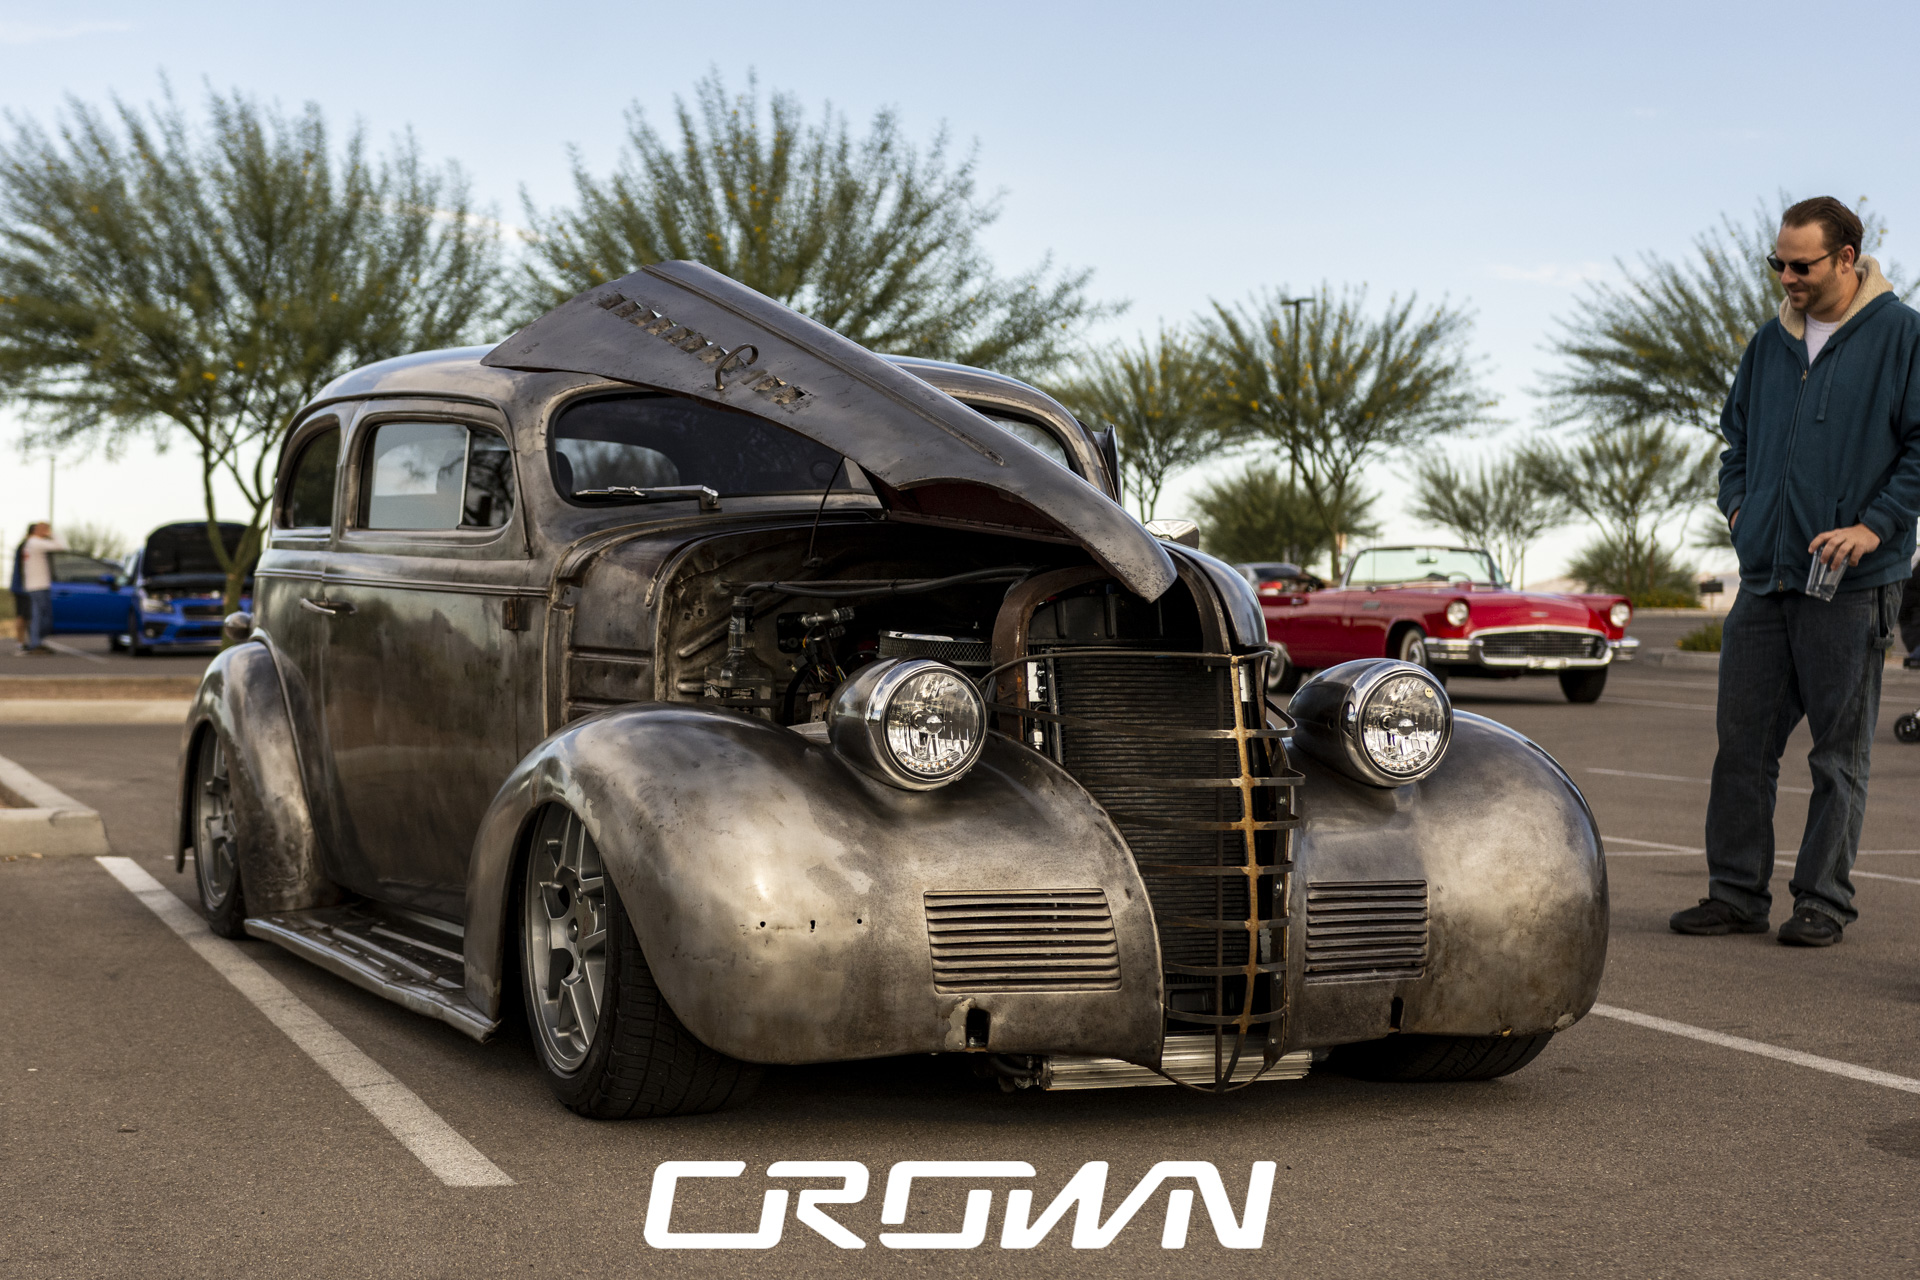 rat rod classic car at topgolf tucson Arizona crown concepts